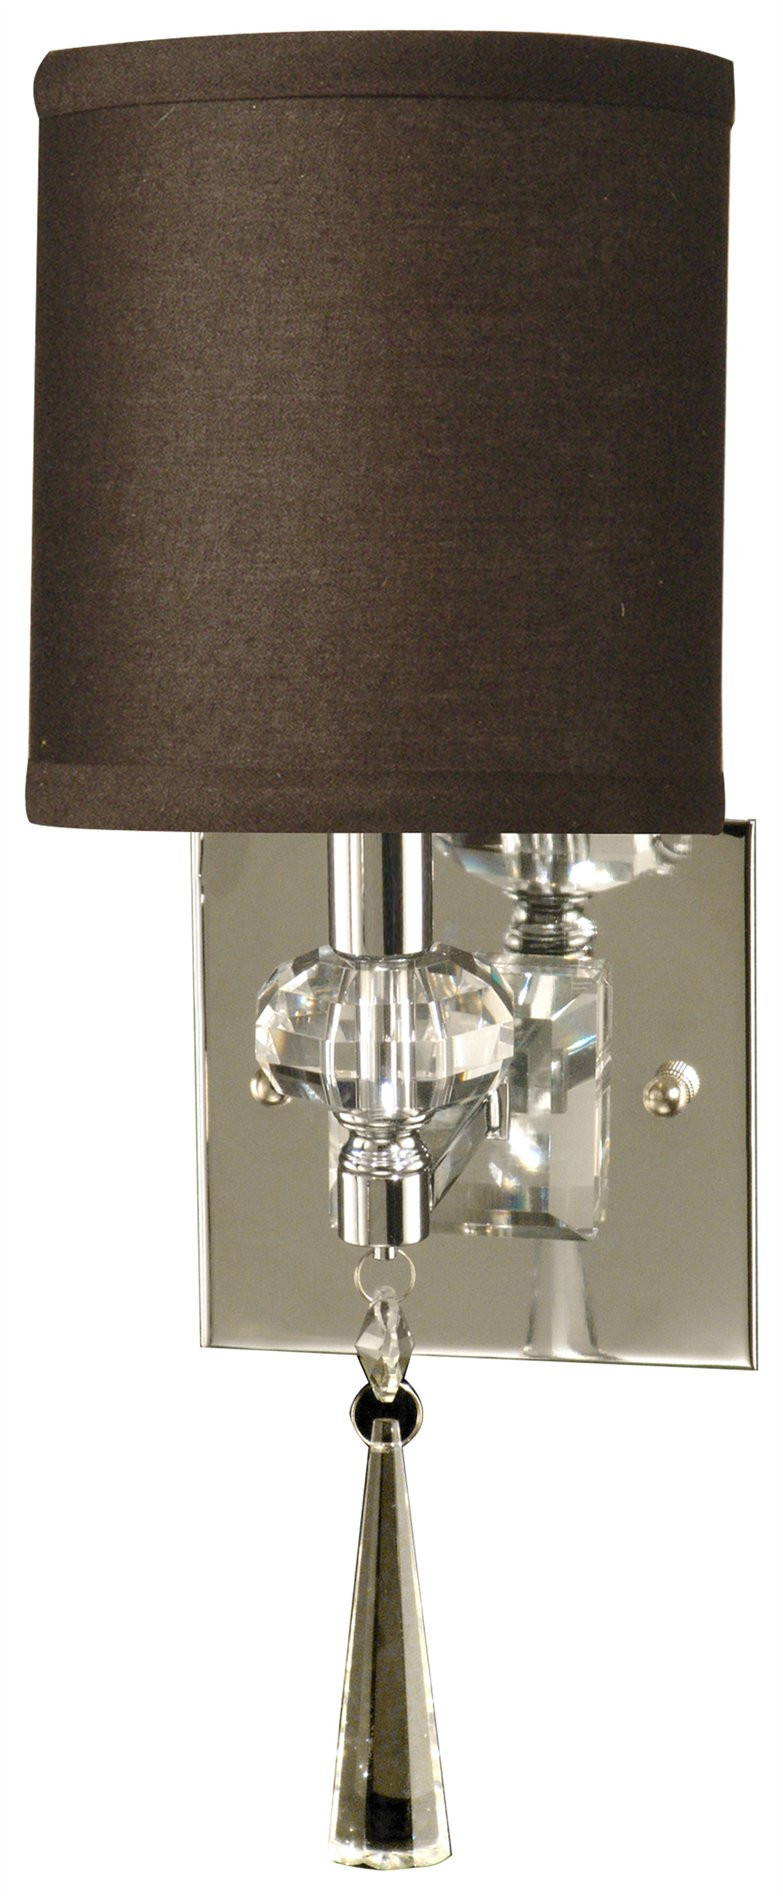 Tiffany Wall Sconce With Switch : Dale Tiffany GW10737 Freeport Transitional Wall Sconce DT-GW10737